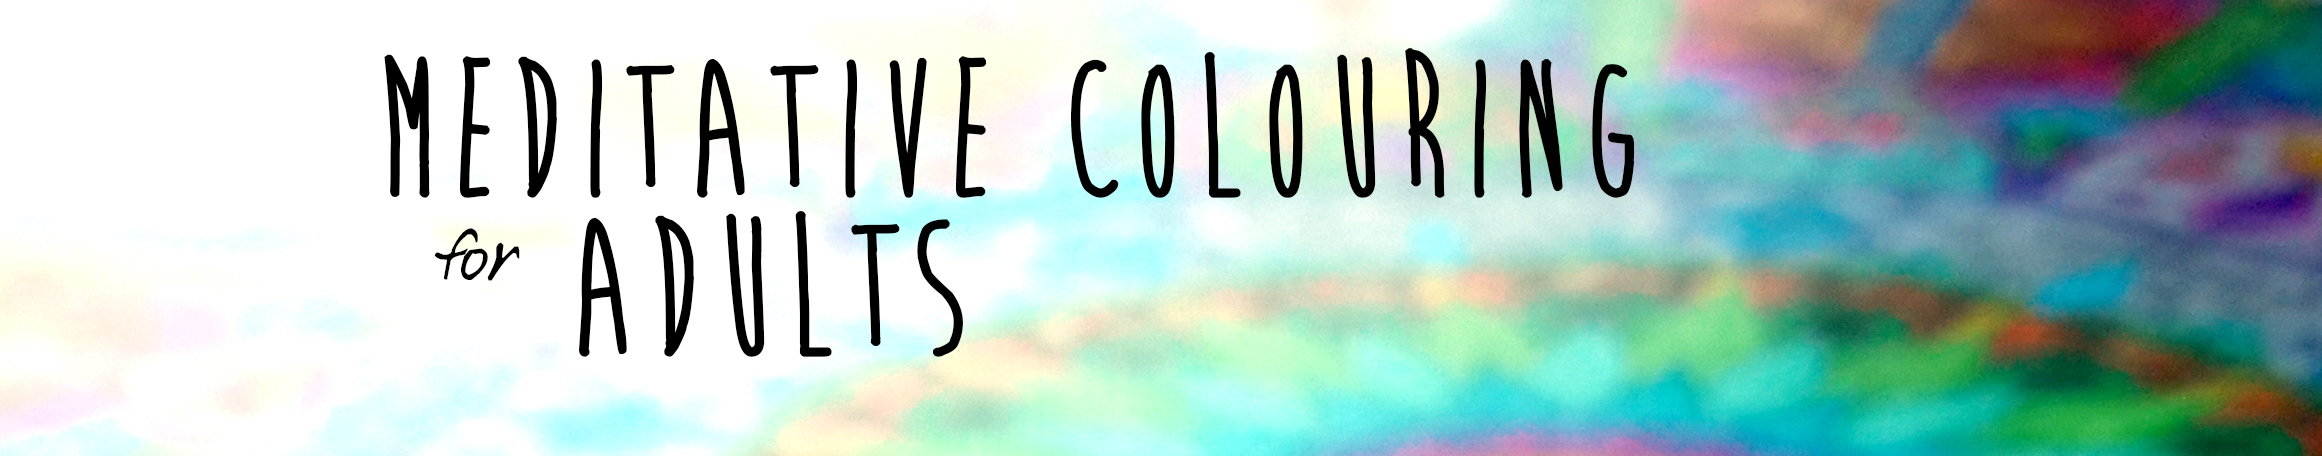 Meditative Colouring for Adults